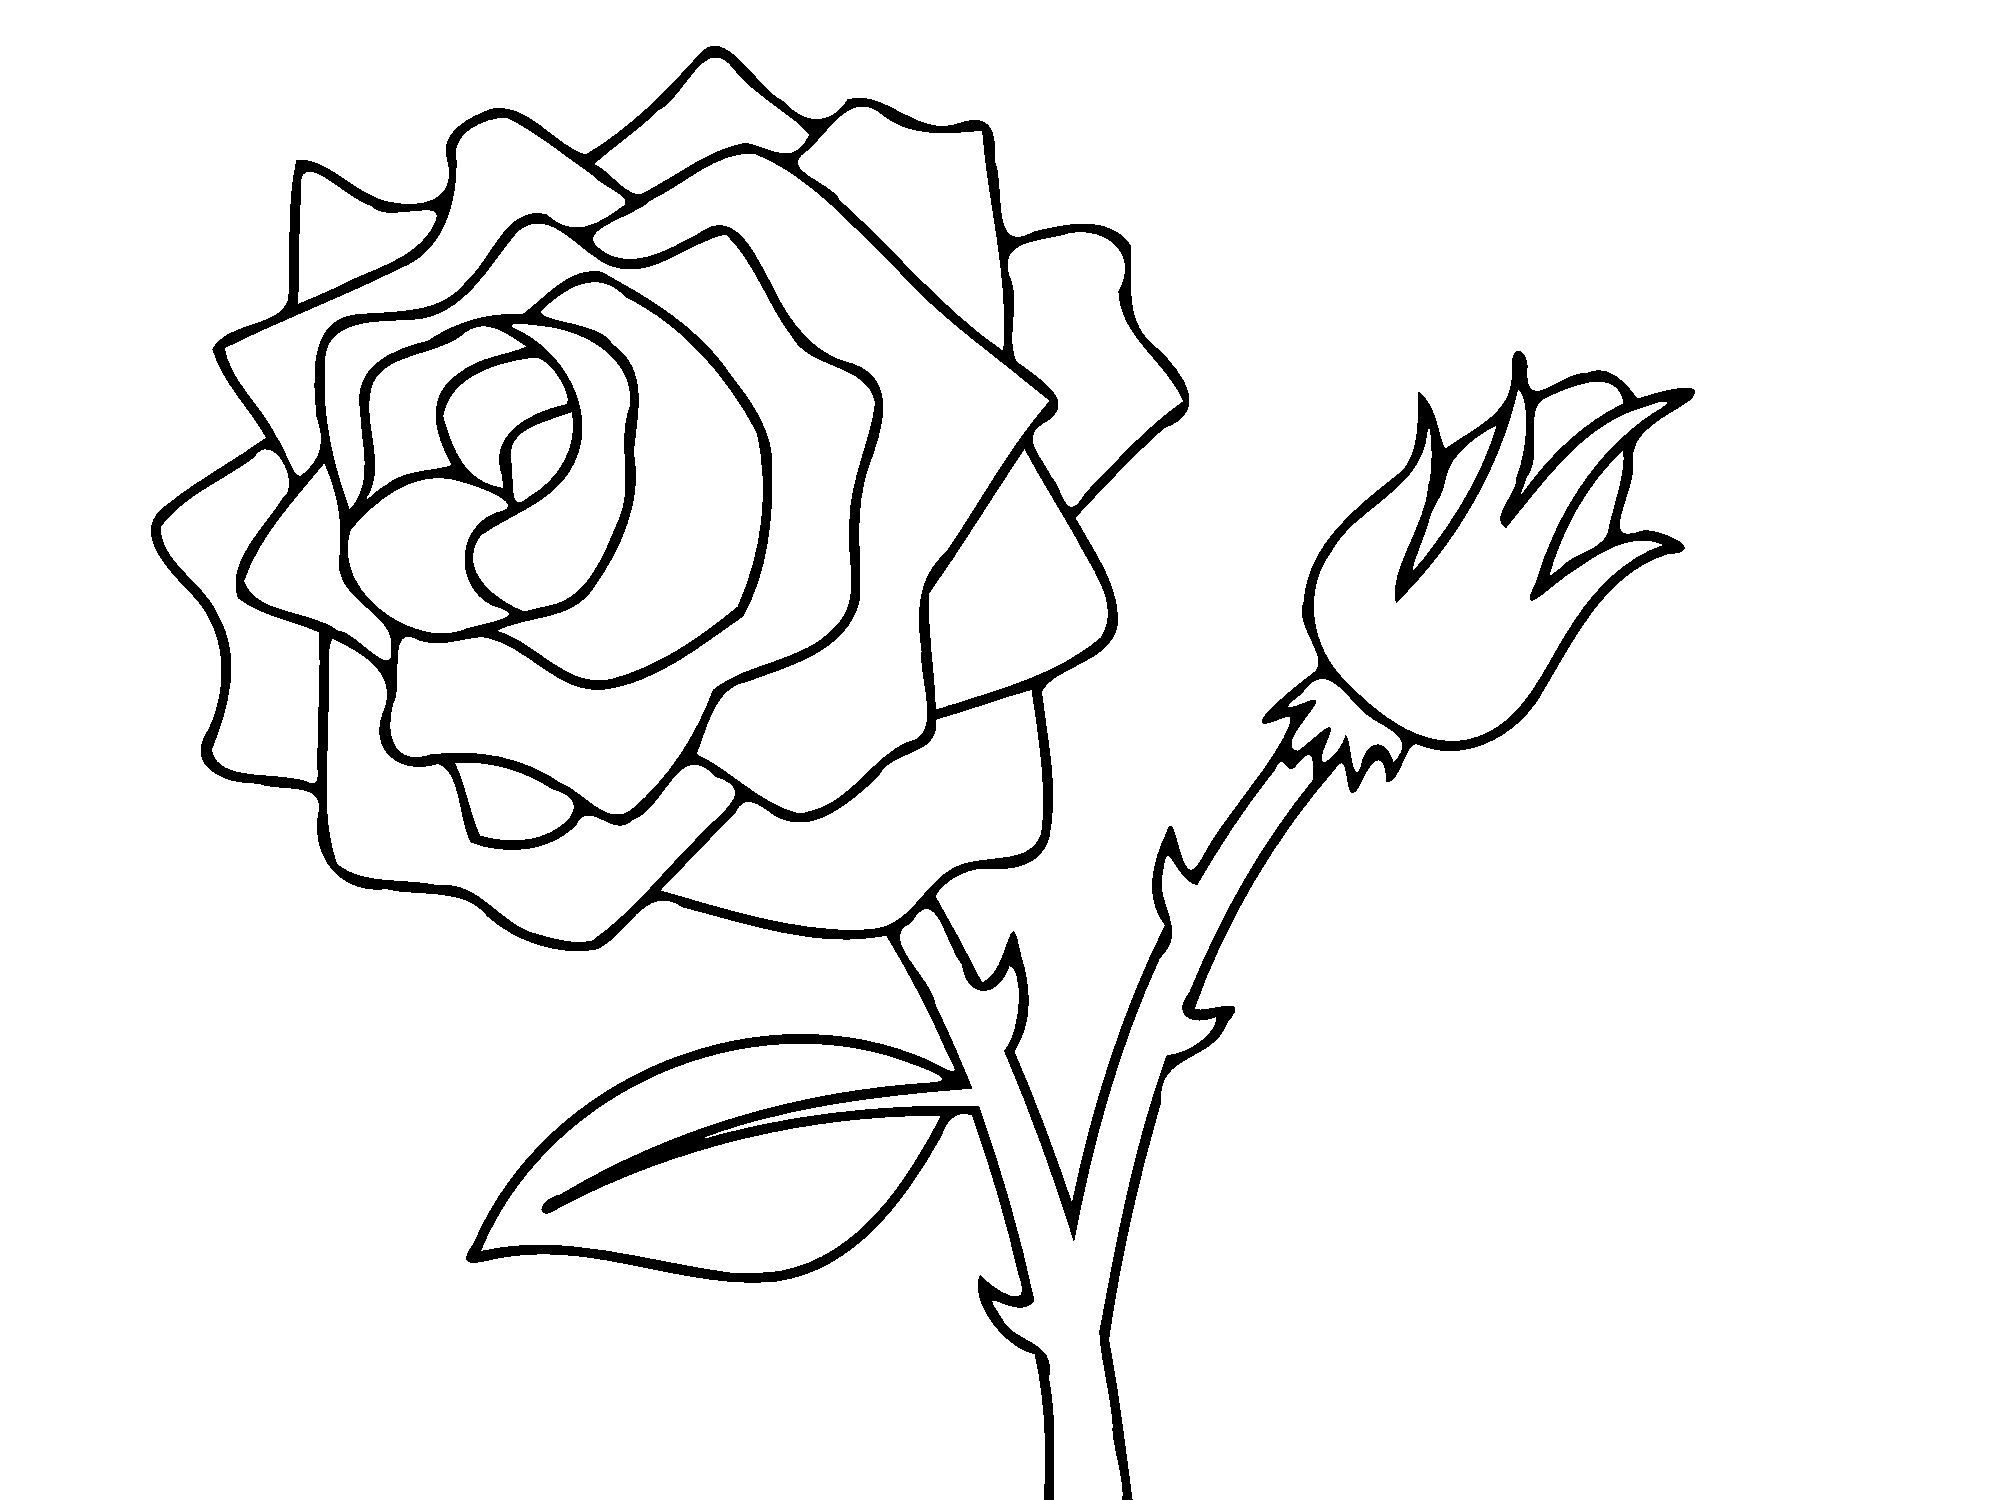 2000x1500 Rose Drawing For Kids Eletragesi Easy Rose Drawing For Kids Images